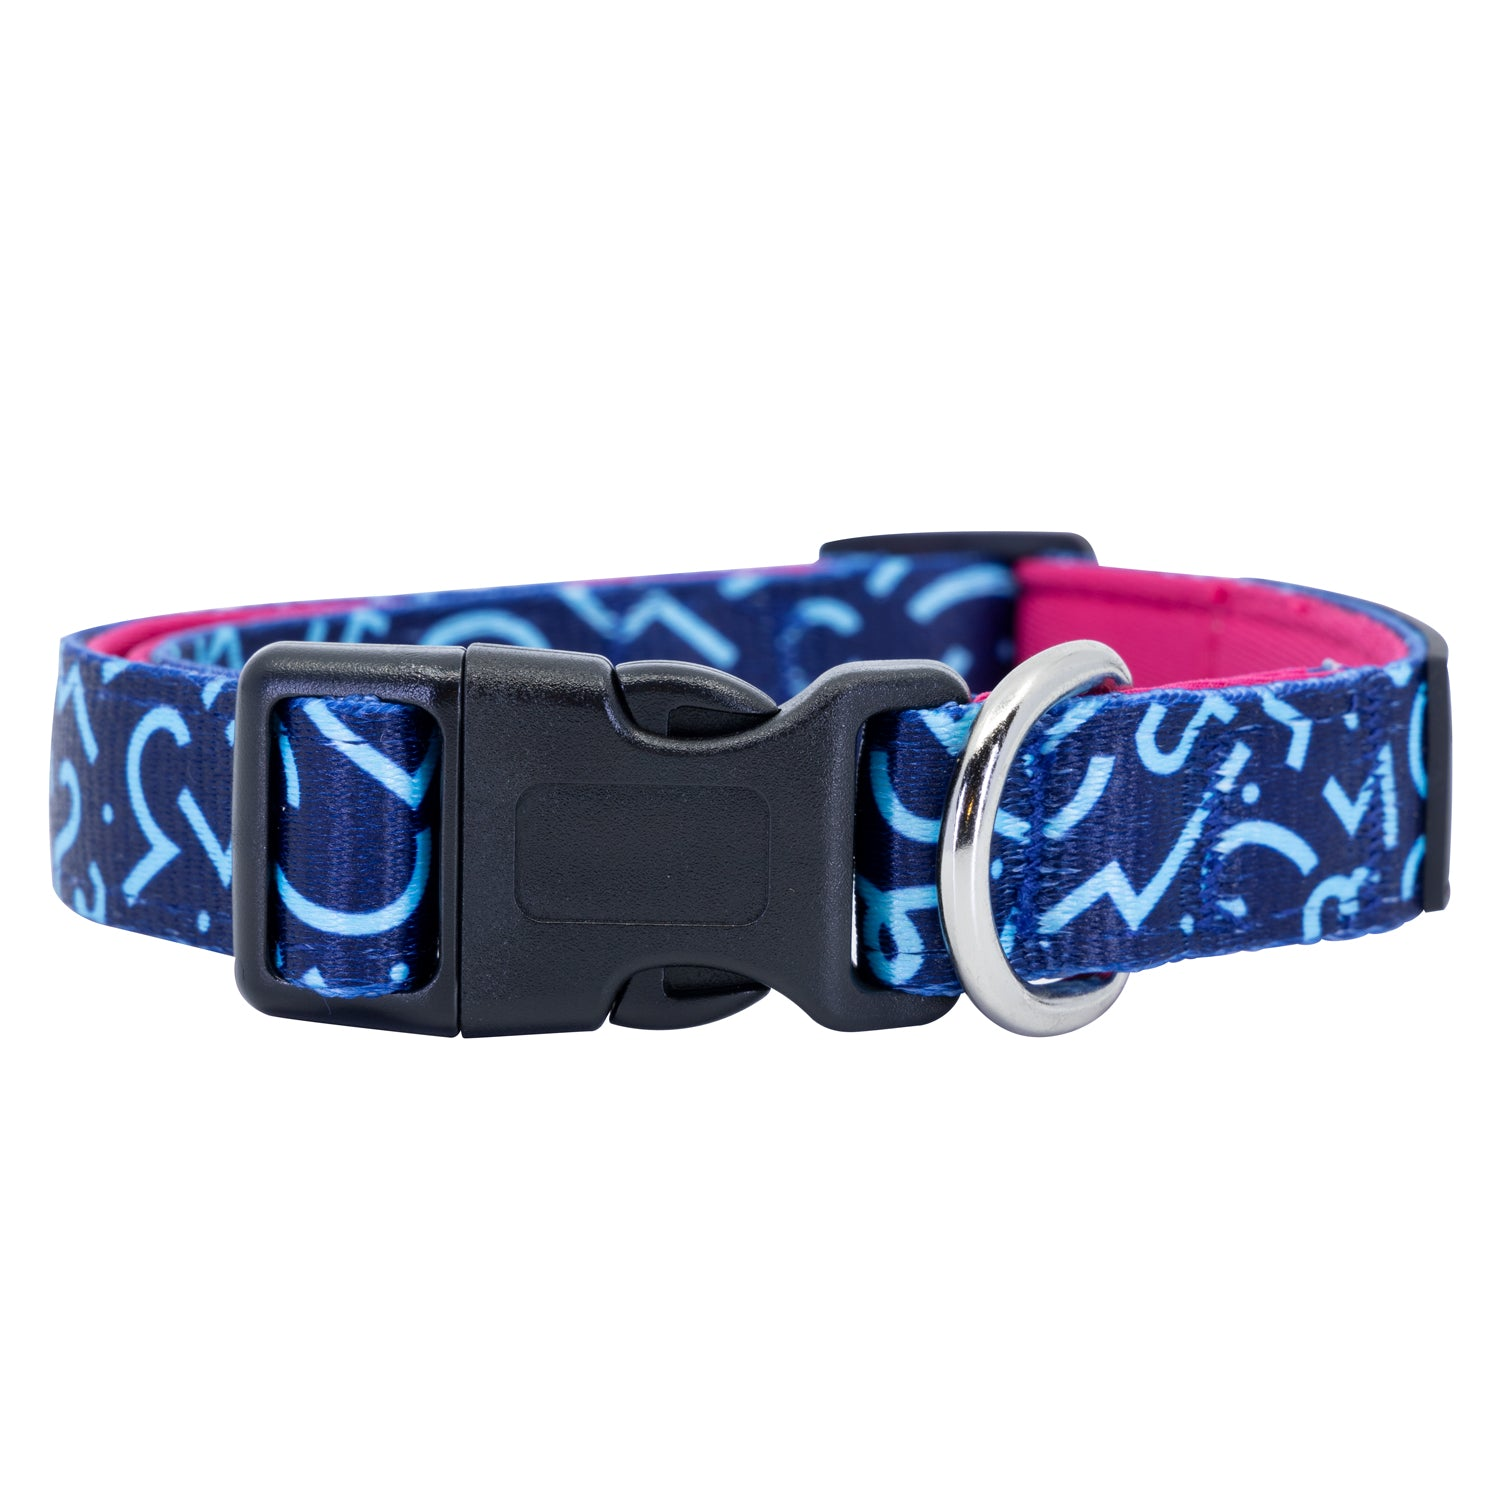 WS: Groovin' Graffiti Dog Collars